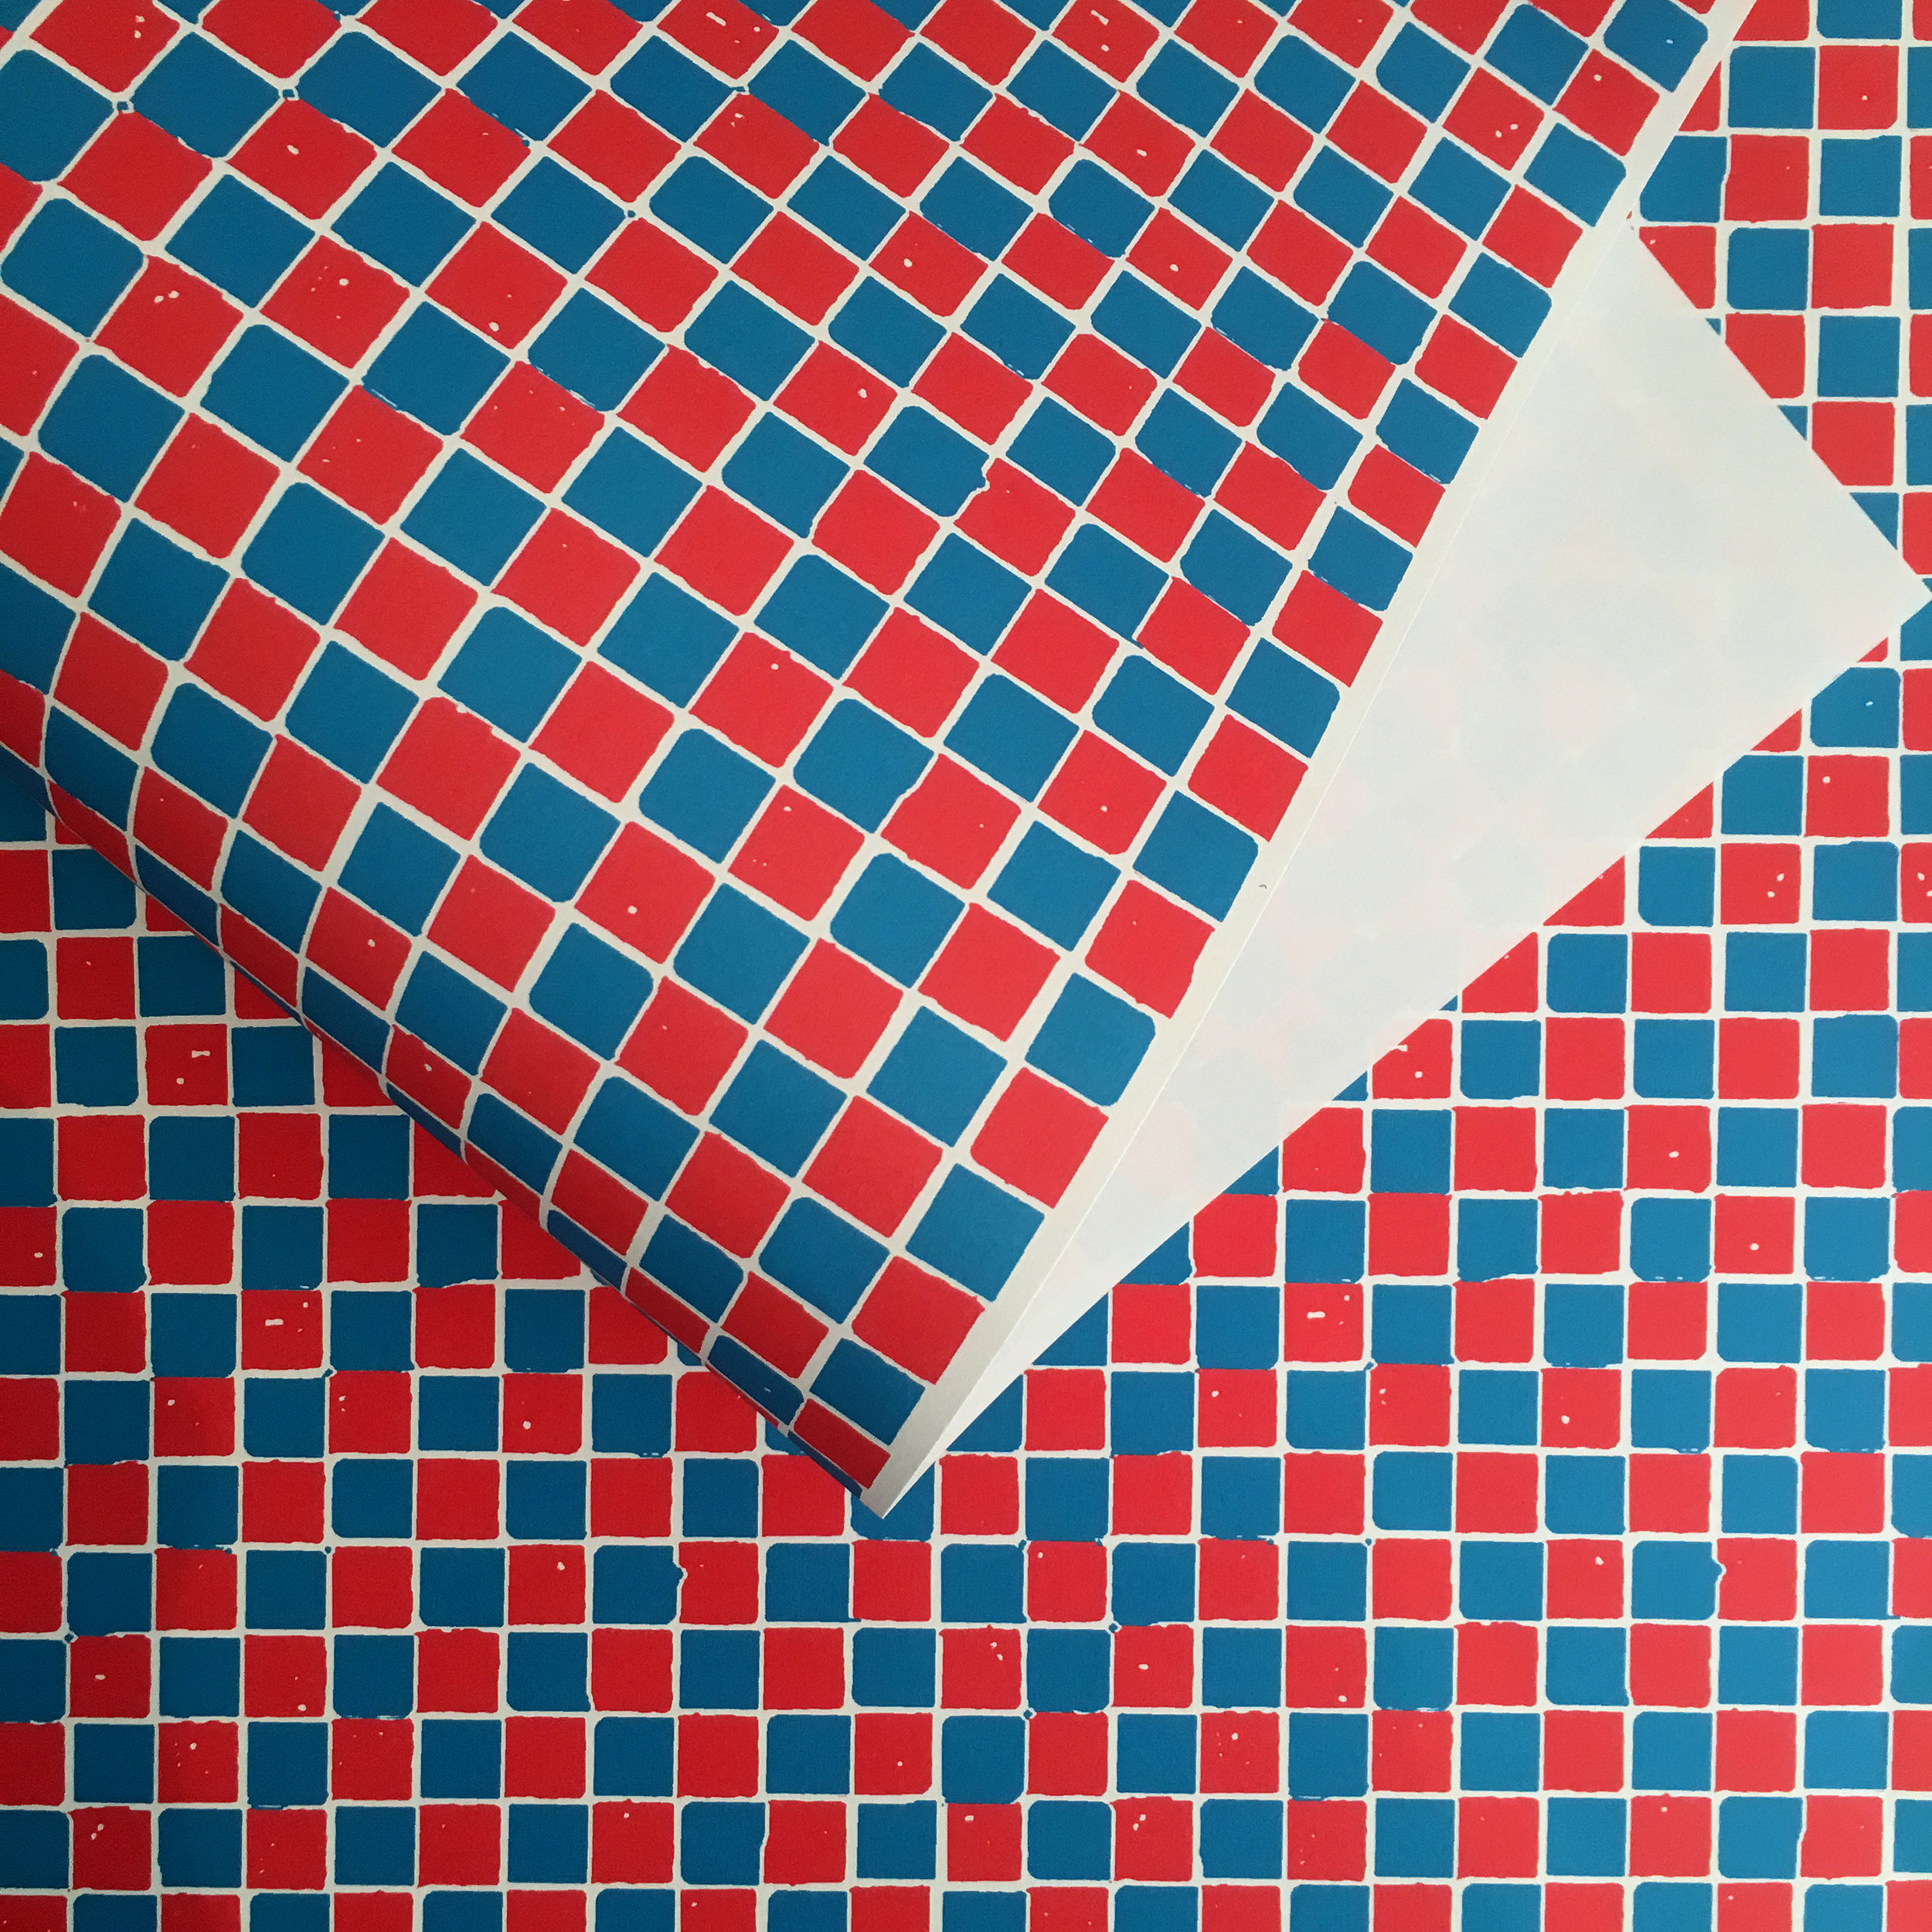 Checkerboard wrapping paper, red/blue: WP_CBRB_02